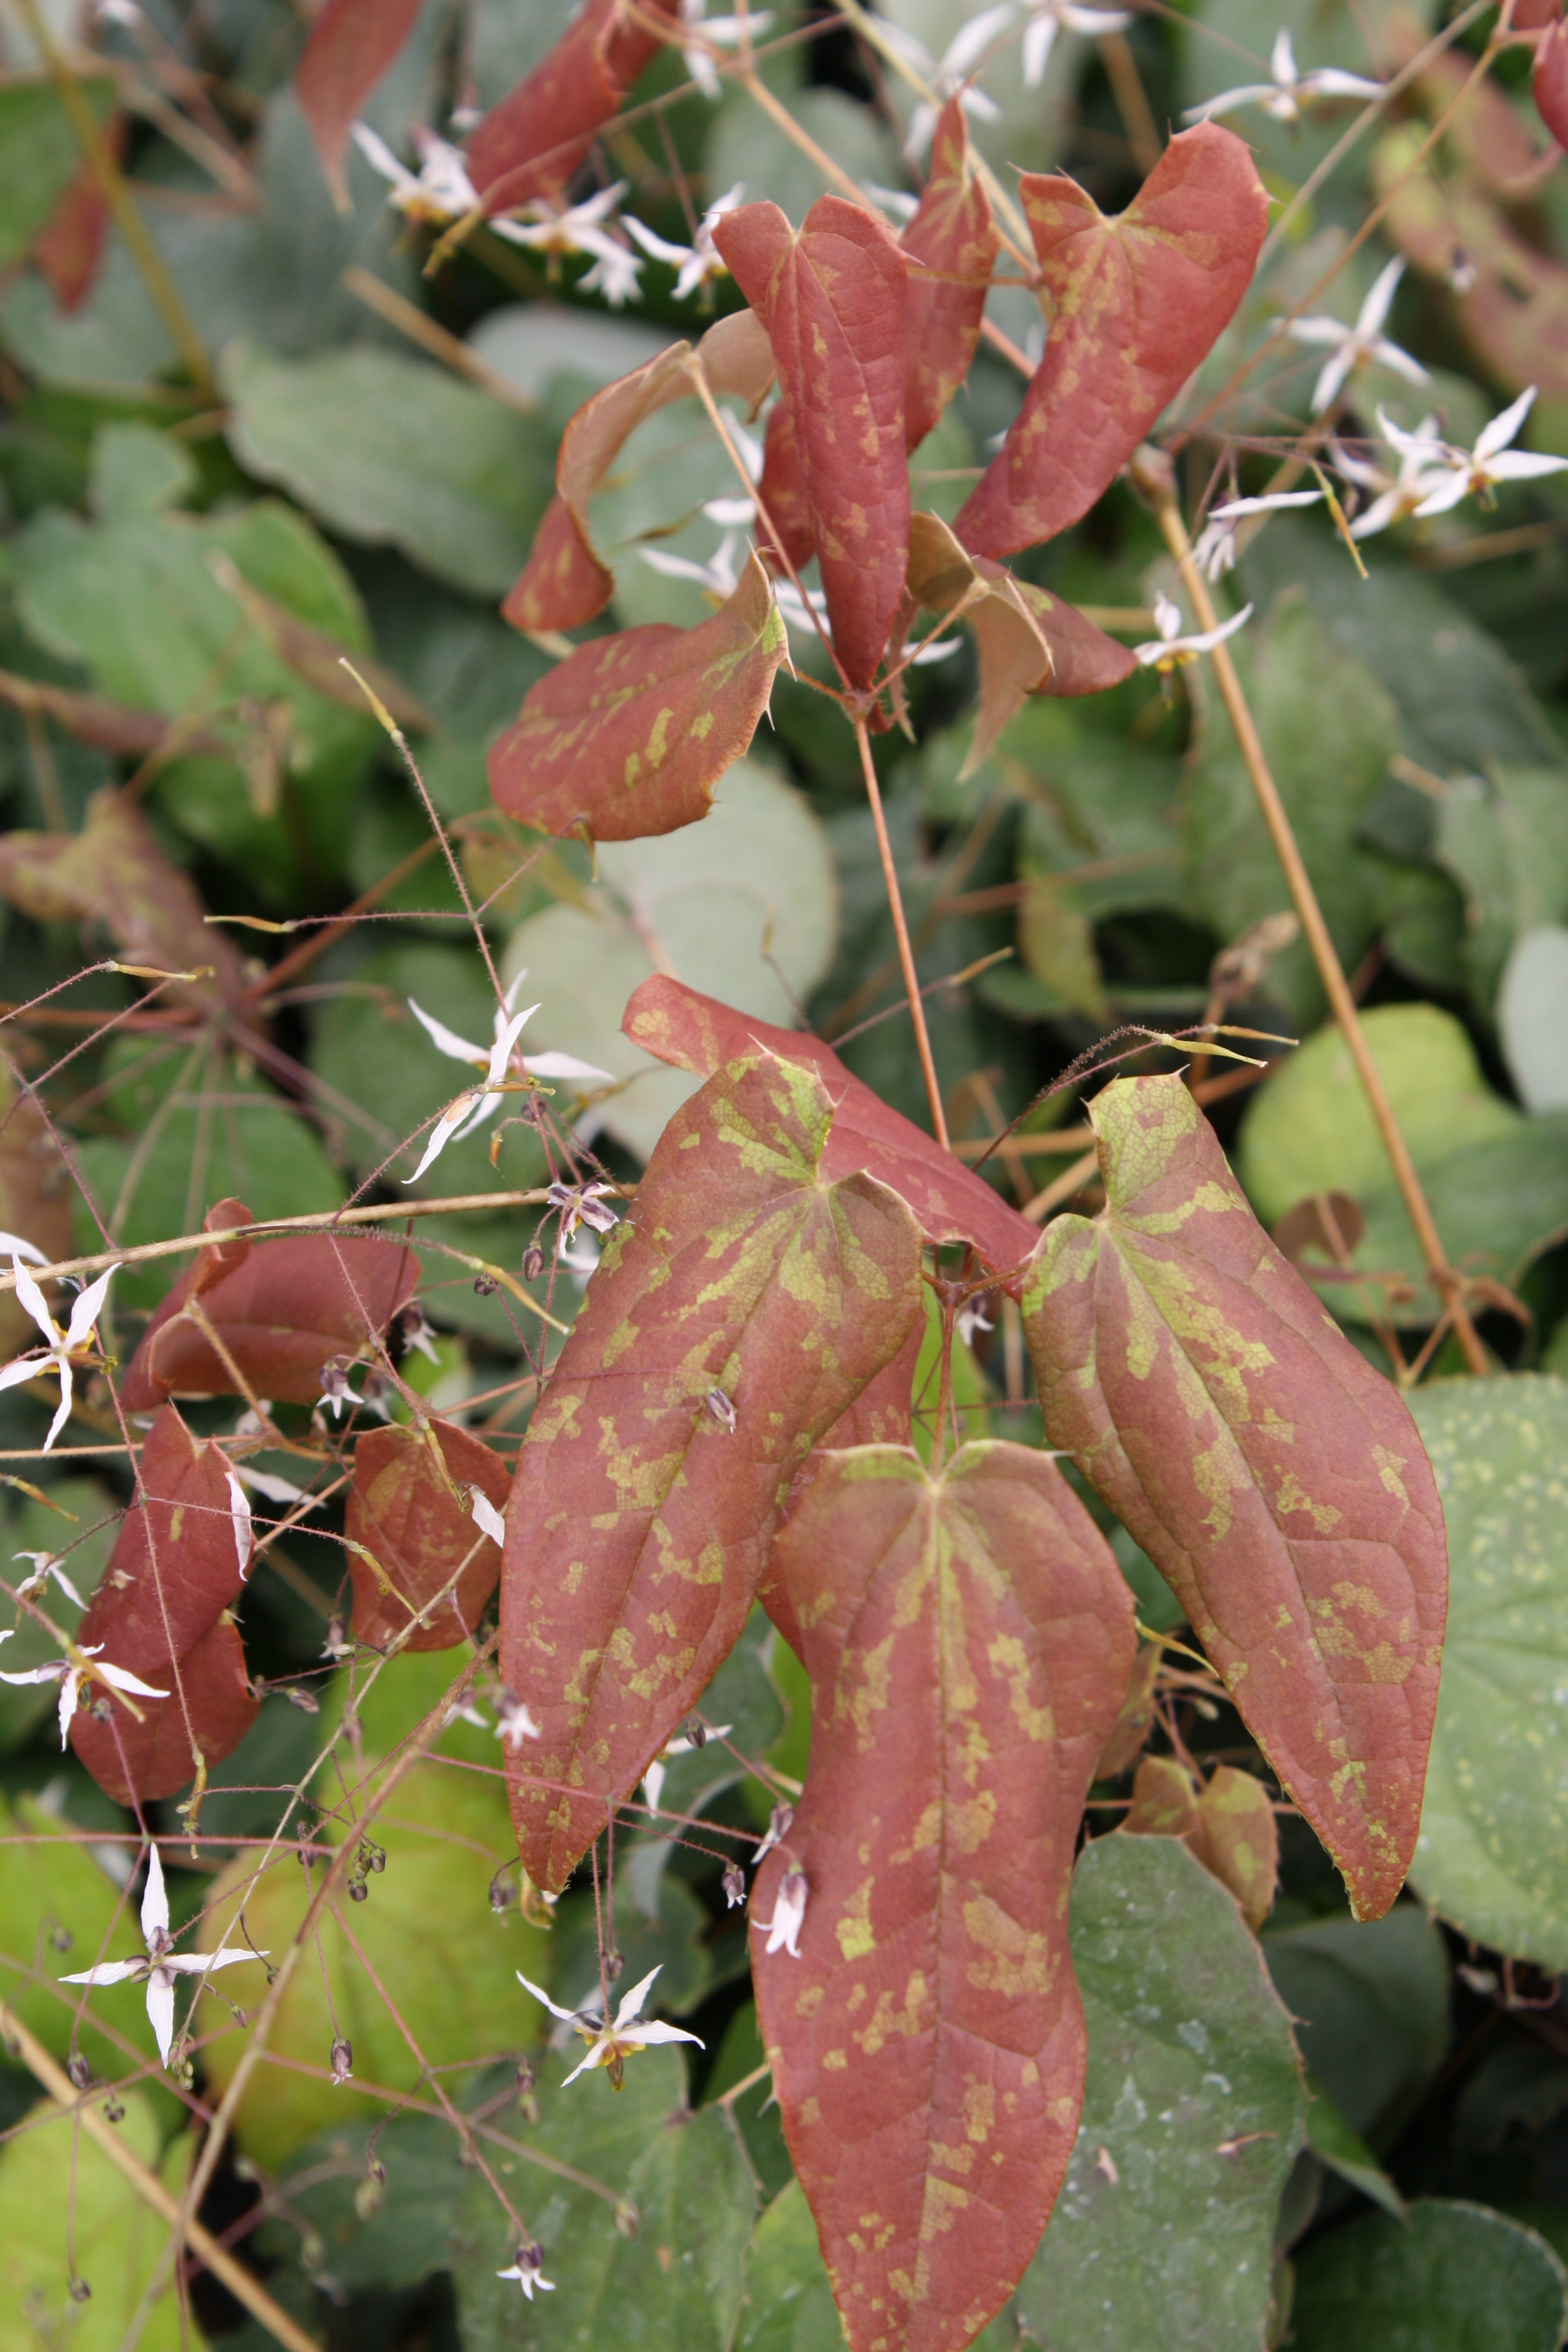 Epimedium pubescens 'Snowflakes' @ JLBG - a2013 JLBG/PDN introduction from Chinese imported plants